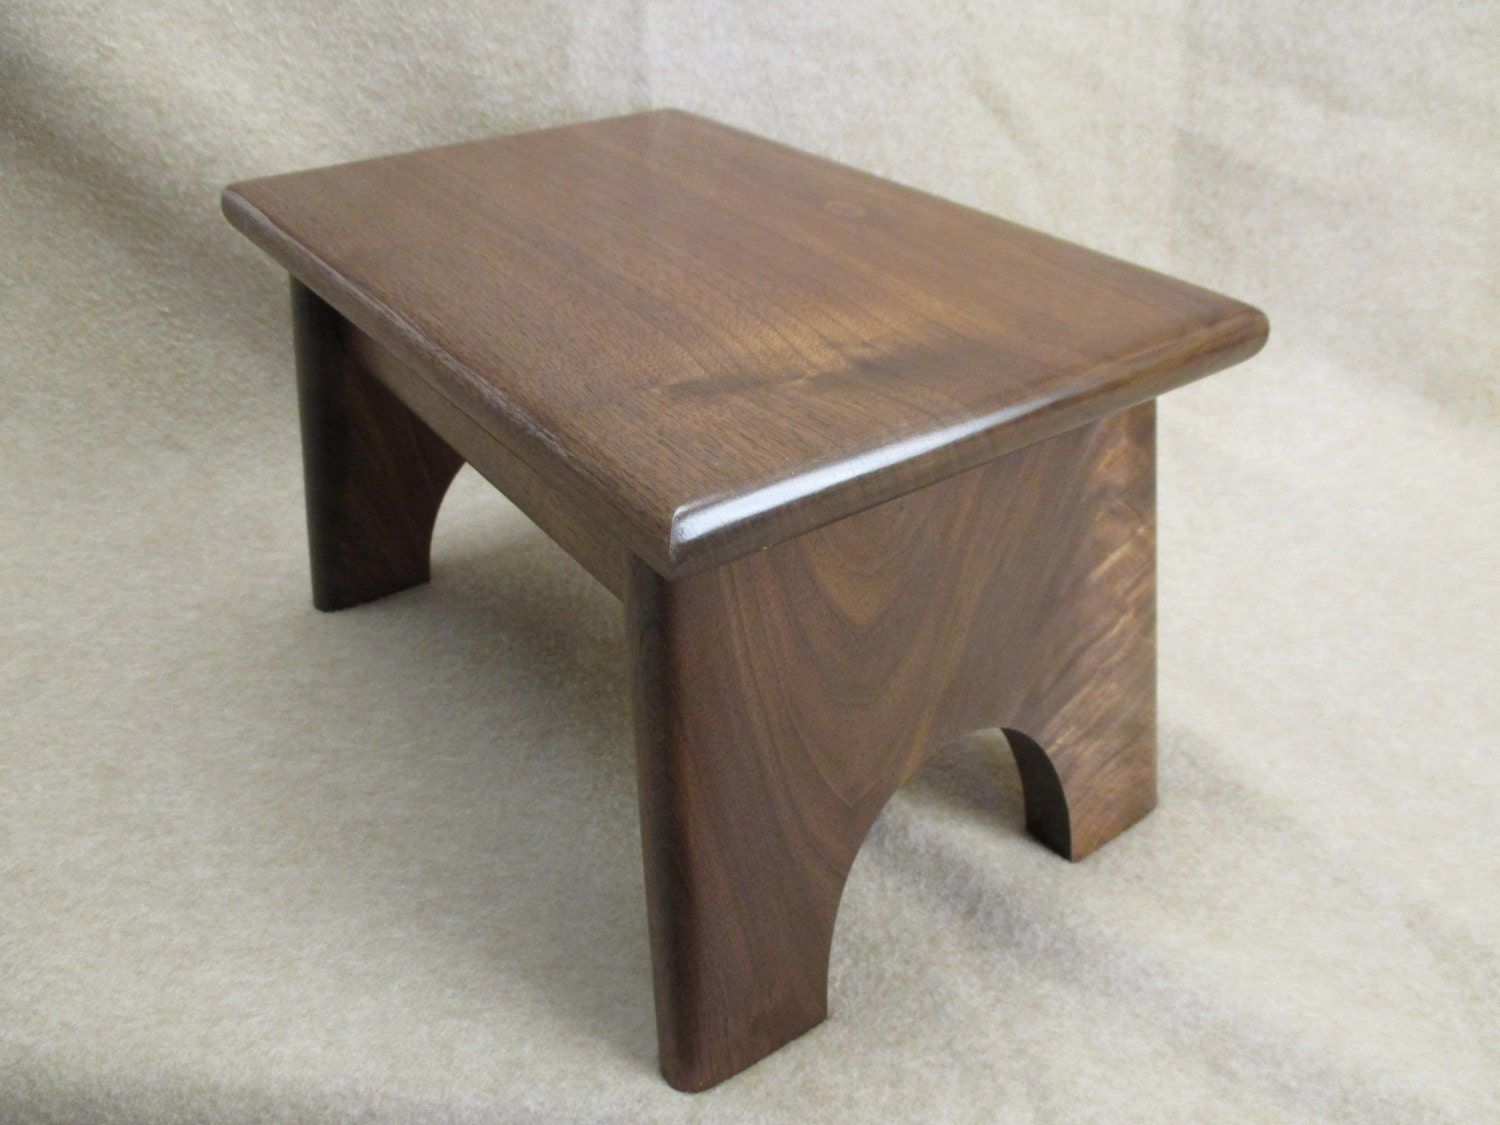 Solid Wood Stools ~ Handcrafted solid wood step stool